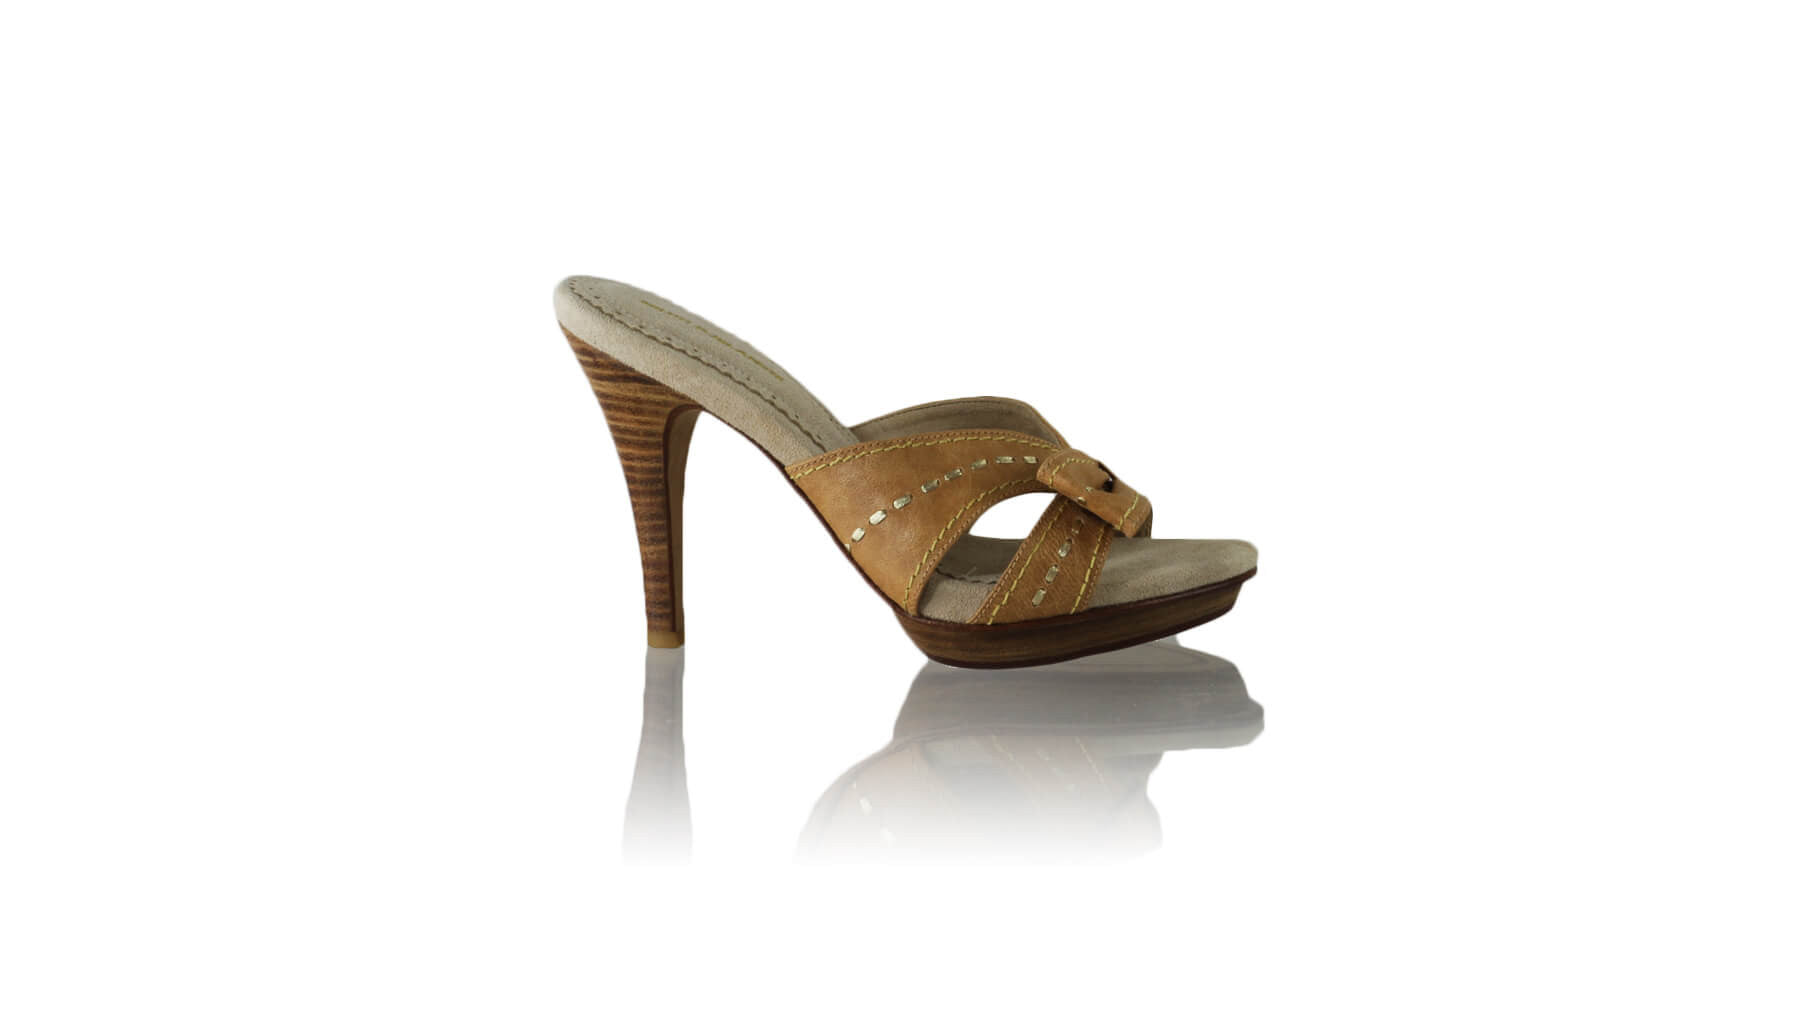 Leather-shoes-Sri 115mm PF - Brown & Gold-sandals higheel-NILUH DJELANTIK-NILUH DJELANTIK